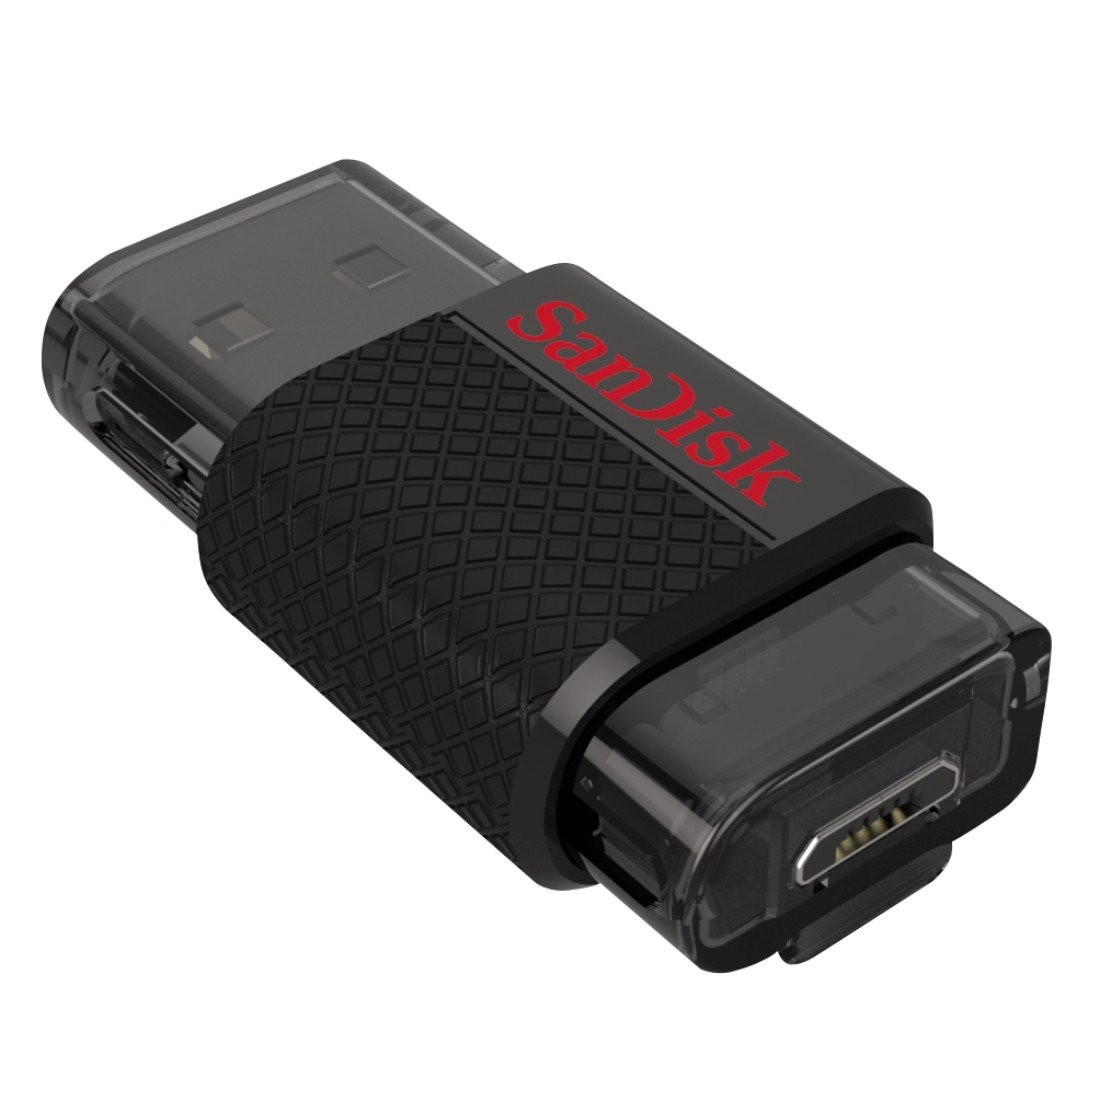 Sandisk 32gb OTG pen drive  — Amazon.in — Rs. 899.0 — Computers, laptops & Accessories